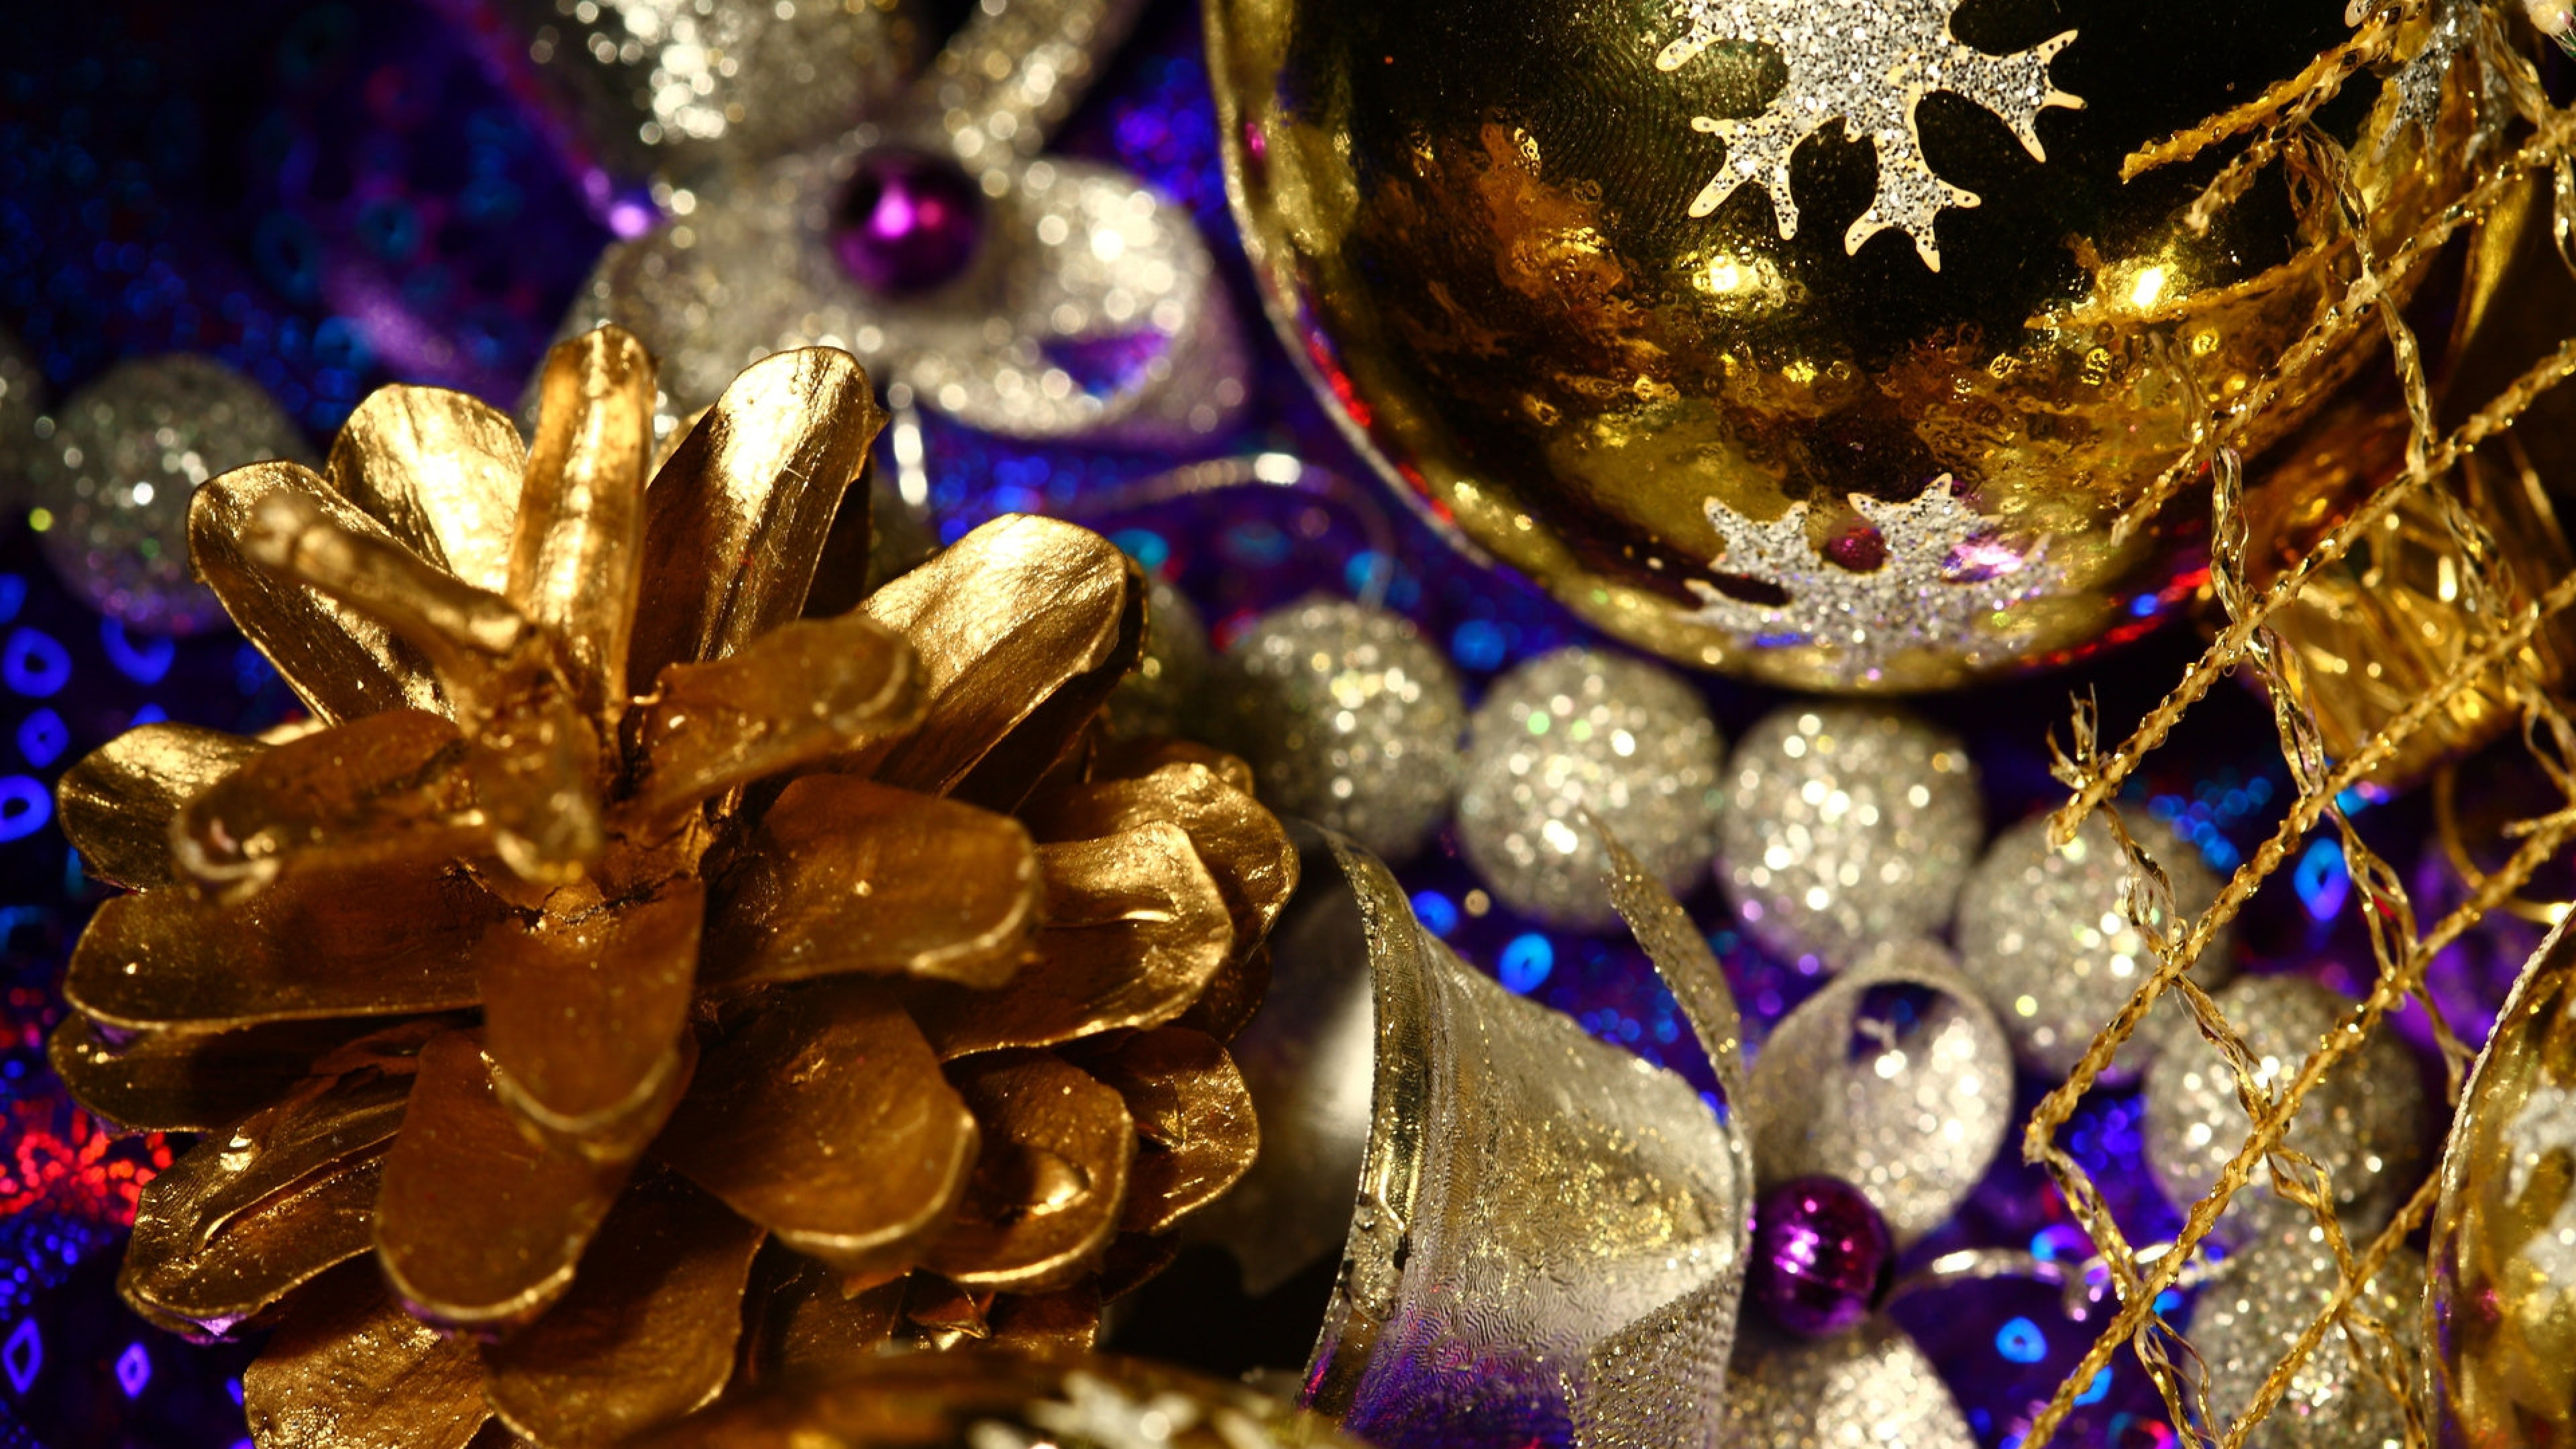 bump ornaments christmas decorations glitter gold close up new year wallpapers